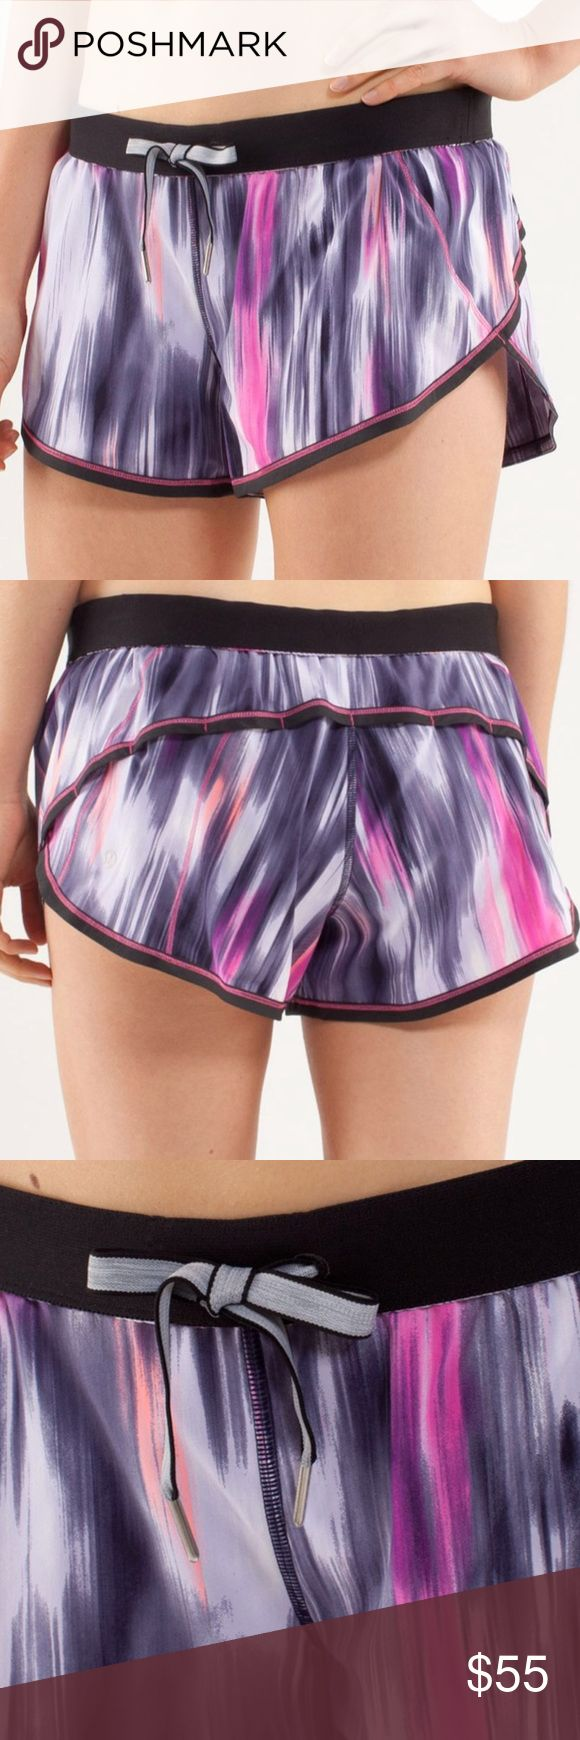 "Rare Lululemon Purple Pattern Roll Down Shorts wear shorts as-is or roll down the waistband for a low-rise fit lightweight Swift fabric with two-way stretch keeps you moving comfortably tie the drawcord for a secure fit built-in liner keeps your shorts in place stash your keys and coins in the hidden inner-waistband pocket  Tech specs designed for: run fabric(s): Swift, Luxtreme® properties: moisture wicking, chafe-resistant, breathable rise: medium inseam: 3"" leg opening: 29 1/4"" liner: yes…"